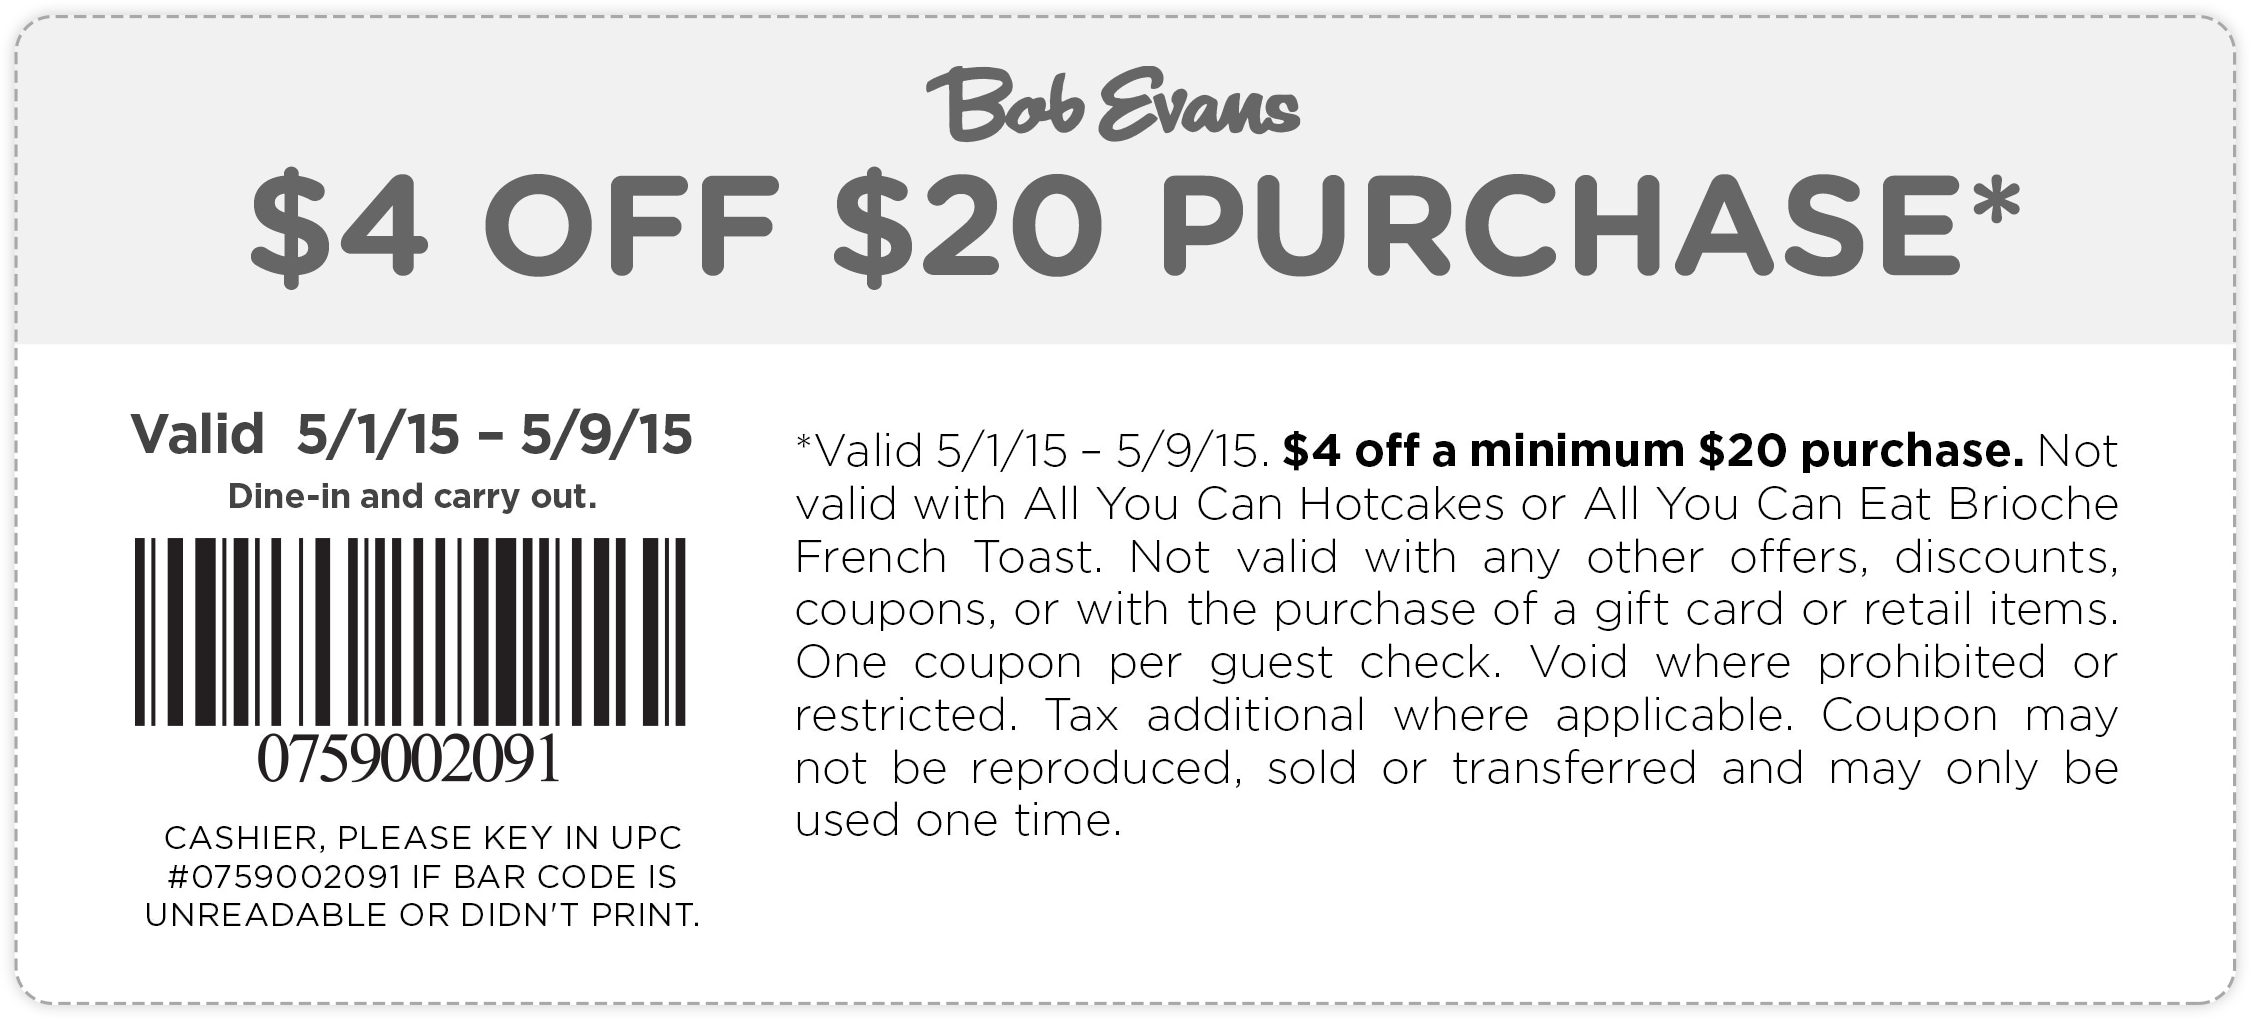 Bob Evans Coupon August 2018 $4 off $20 at Bob Evans restaurants